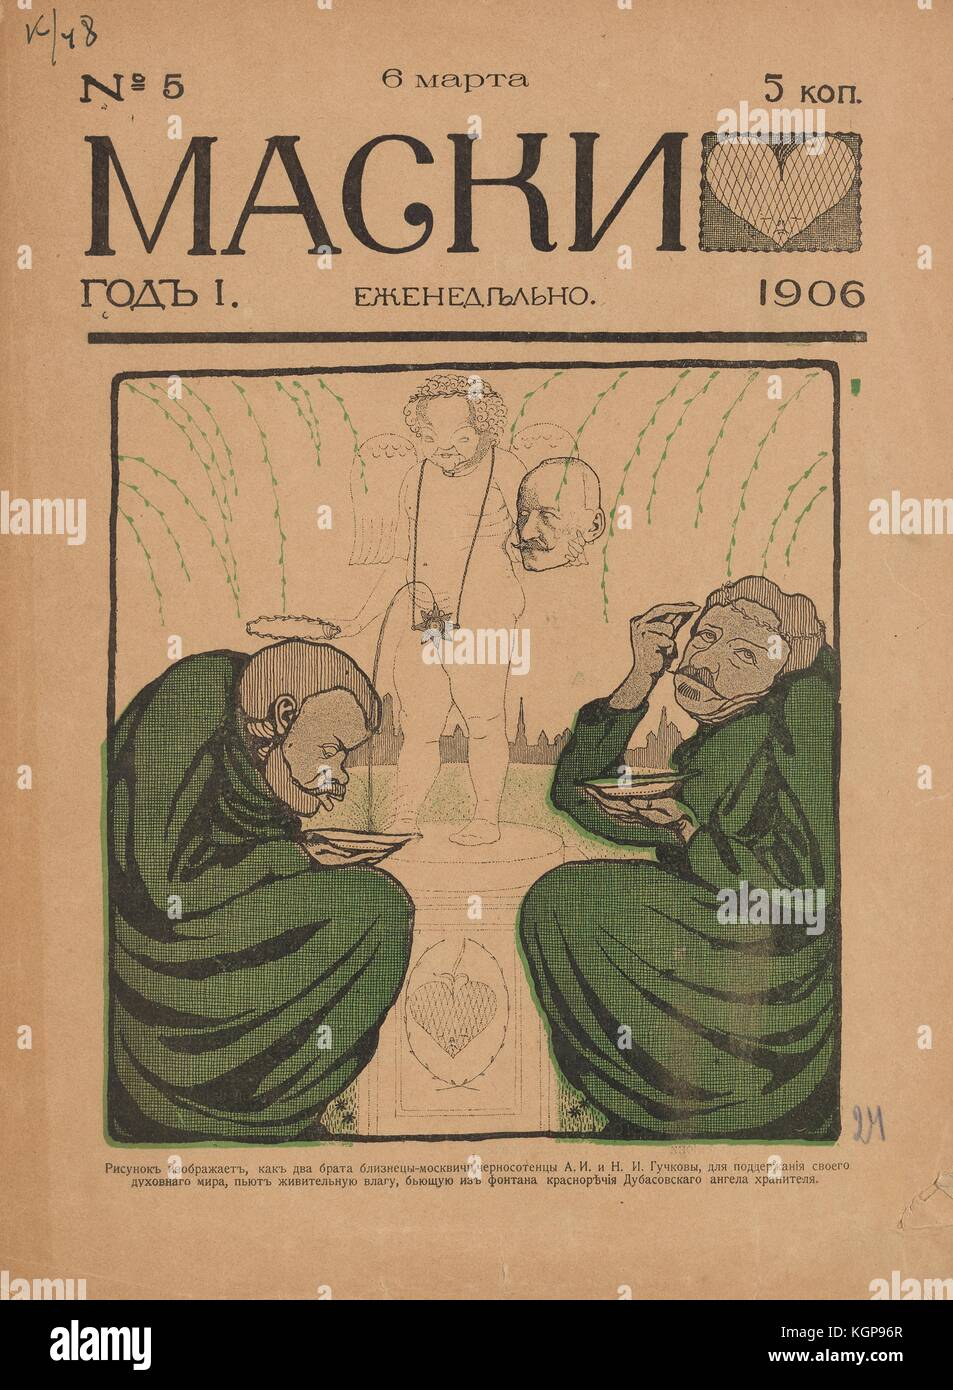 Cover of the Russian satirical journal Maski (Masks) depicting two men dressed as Russian orthodox monks kneeling - Stock Image